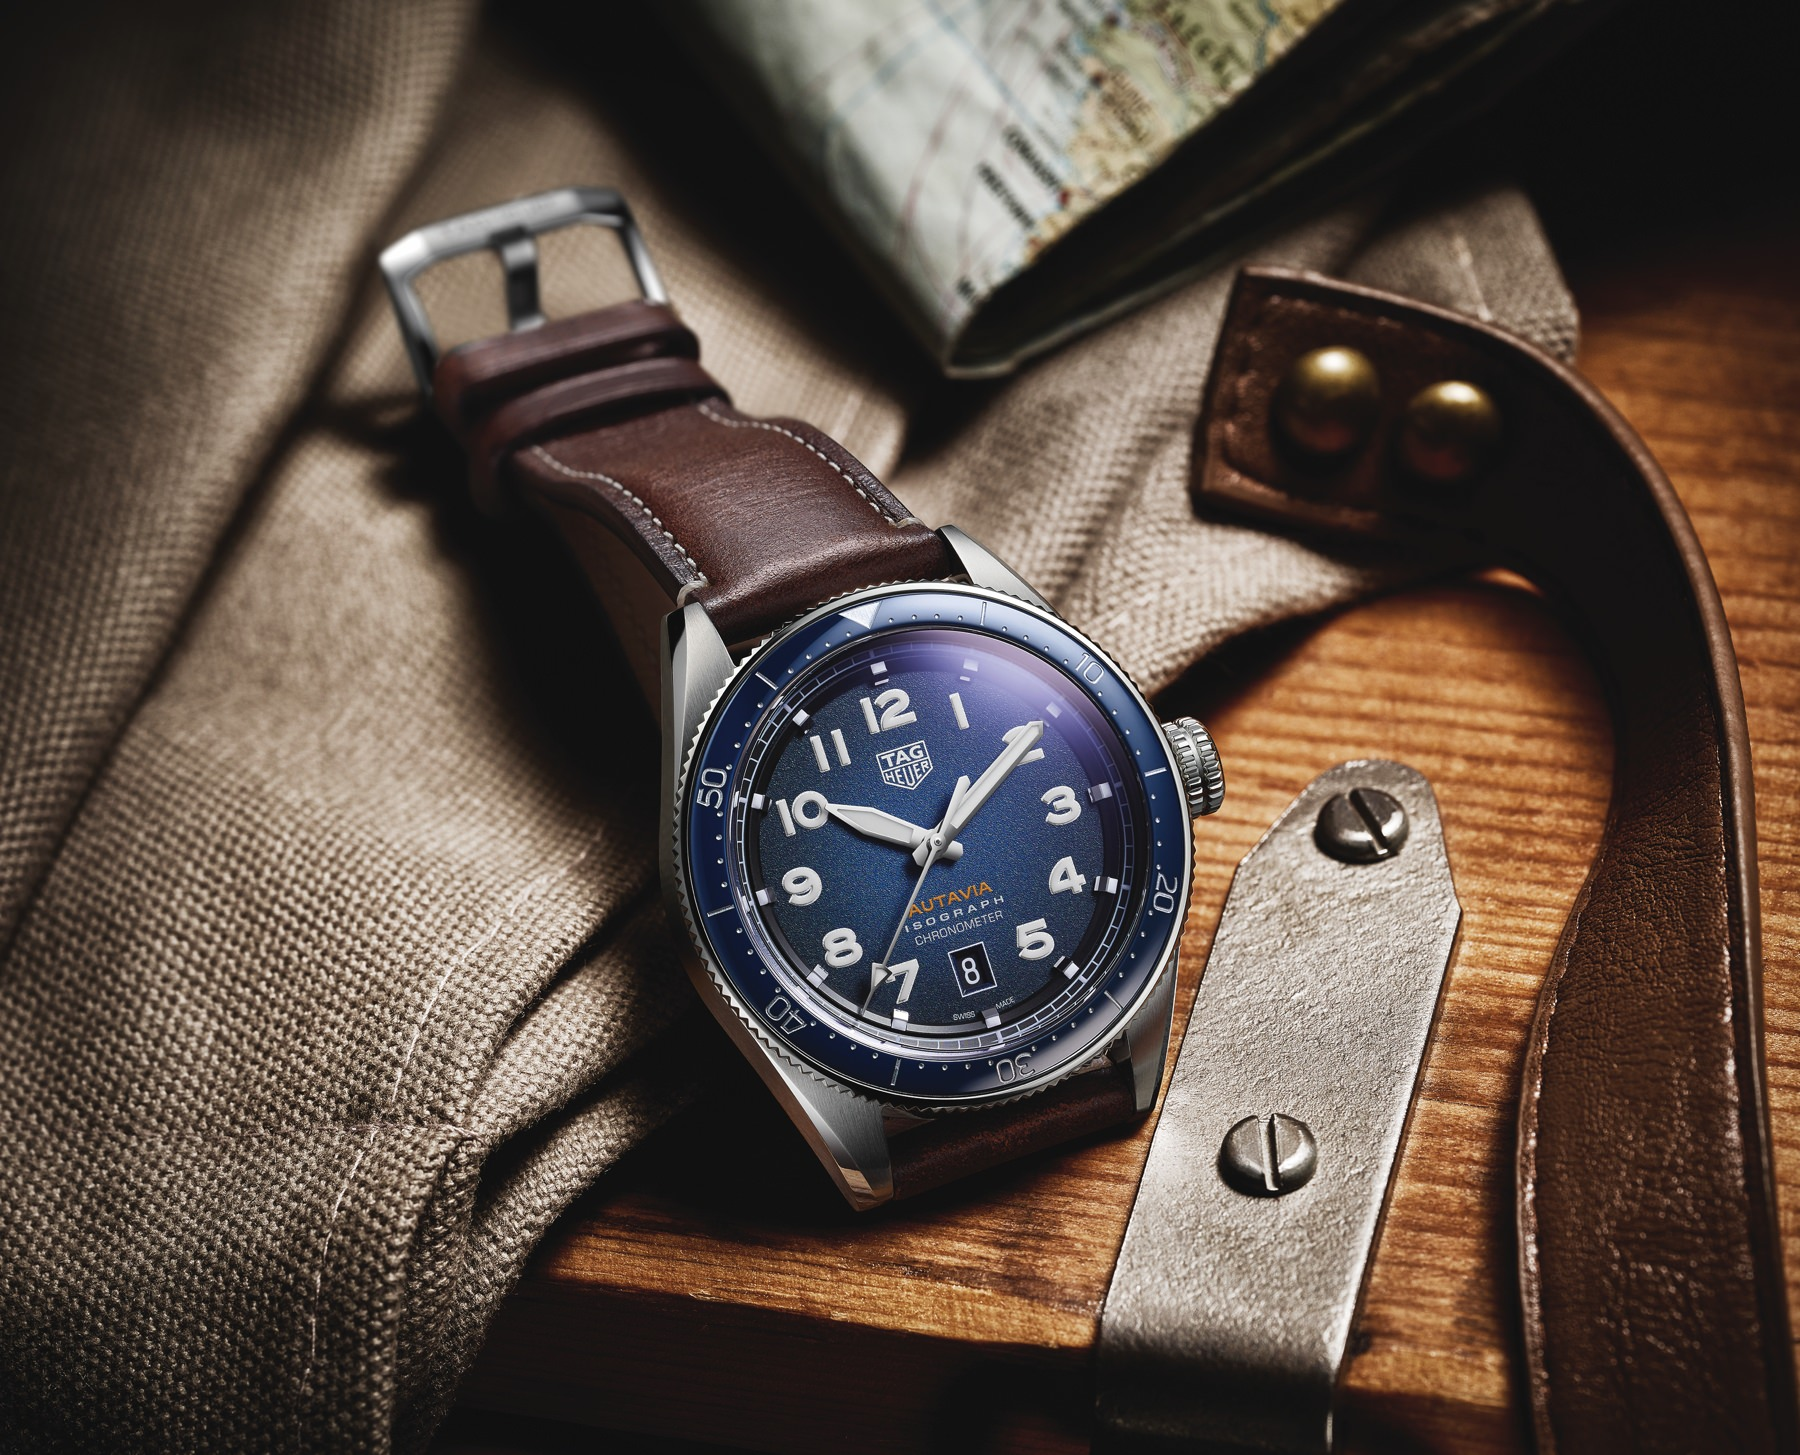 Moern heirloom timepieces from TAG Heuer for Father's Day